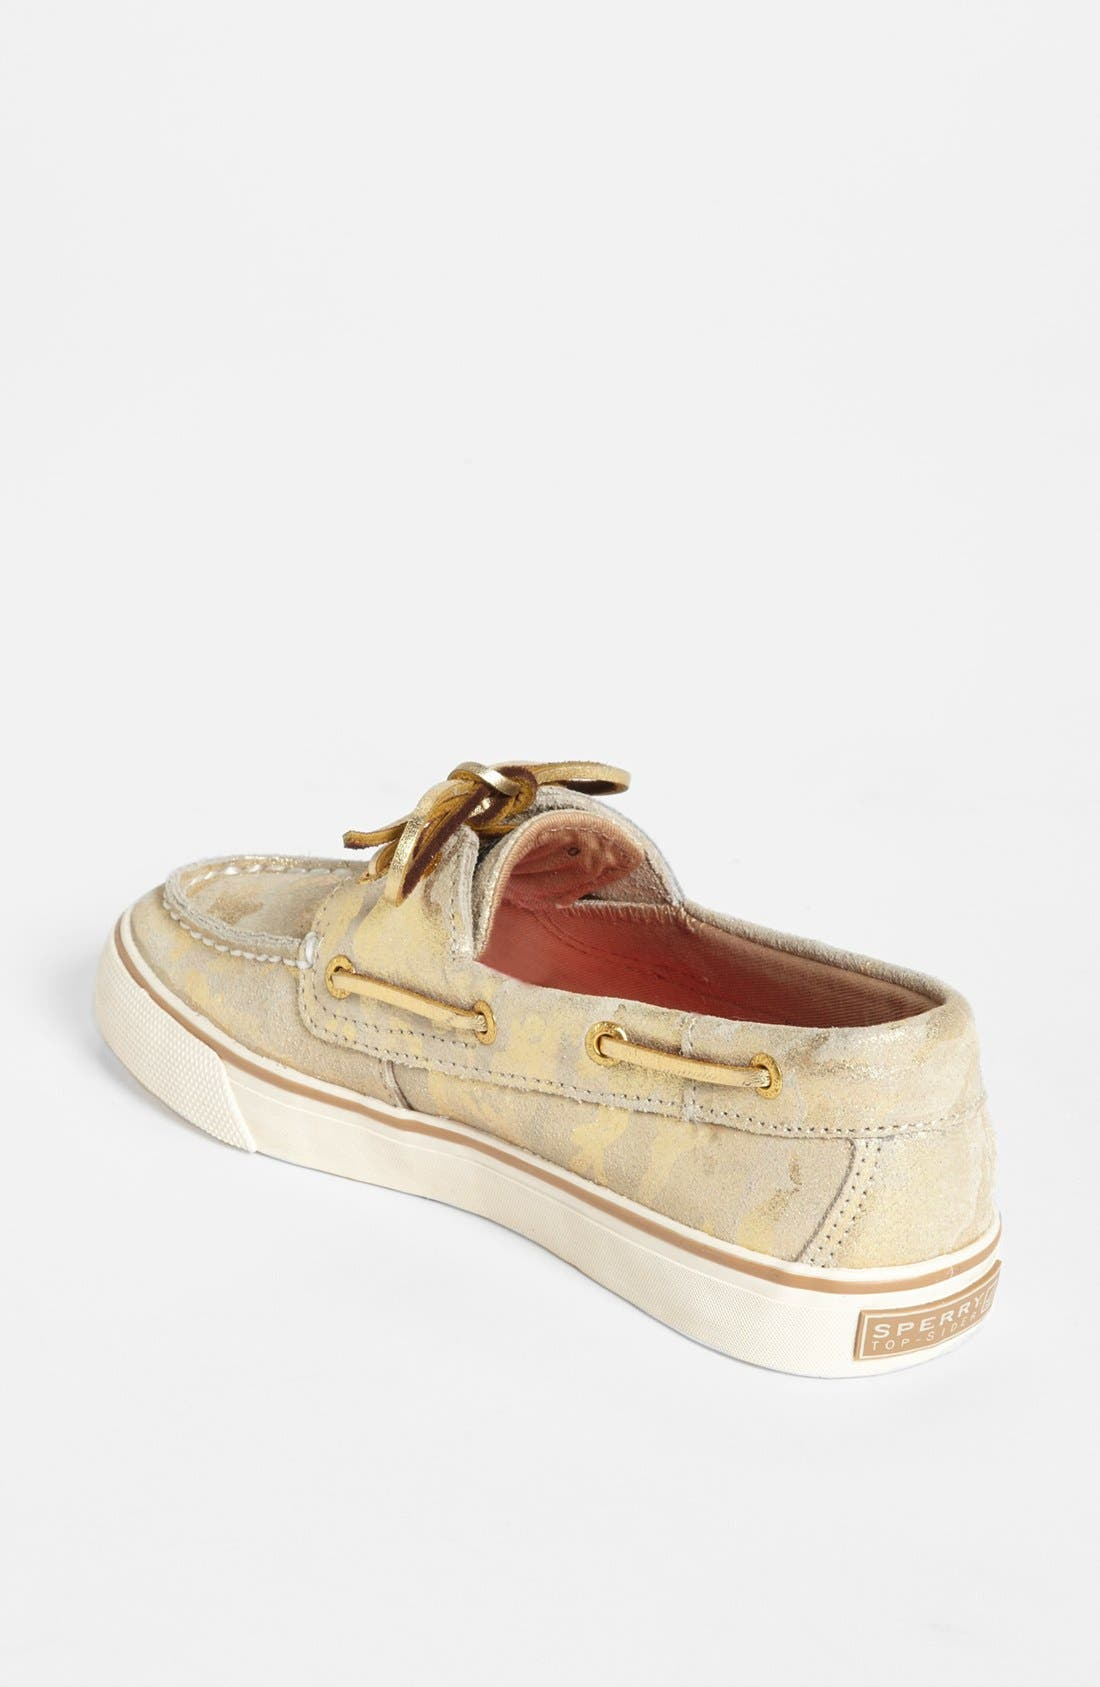 Top-Sider<sup>®</sup> 'Bahama' Sequined Boat Shoe,                             Alternate thumbnail 89, color,